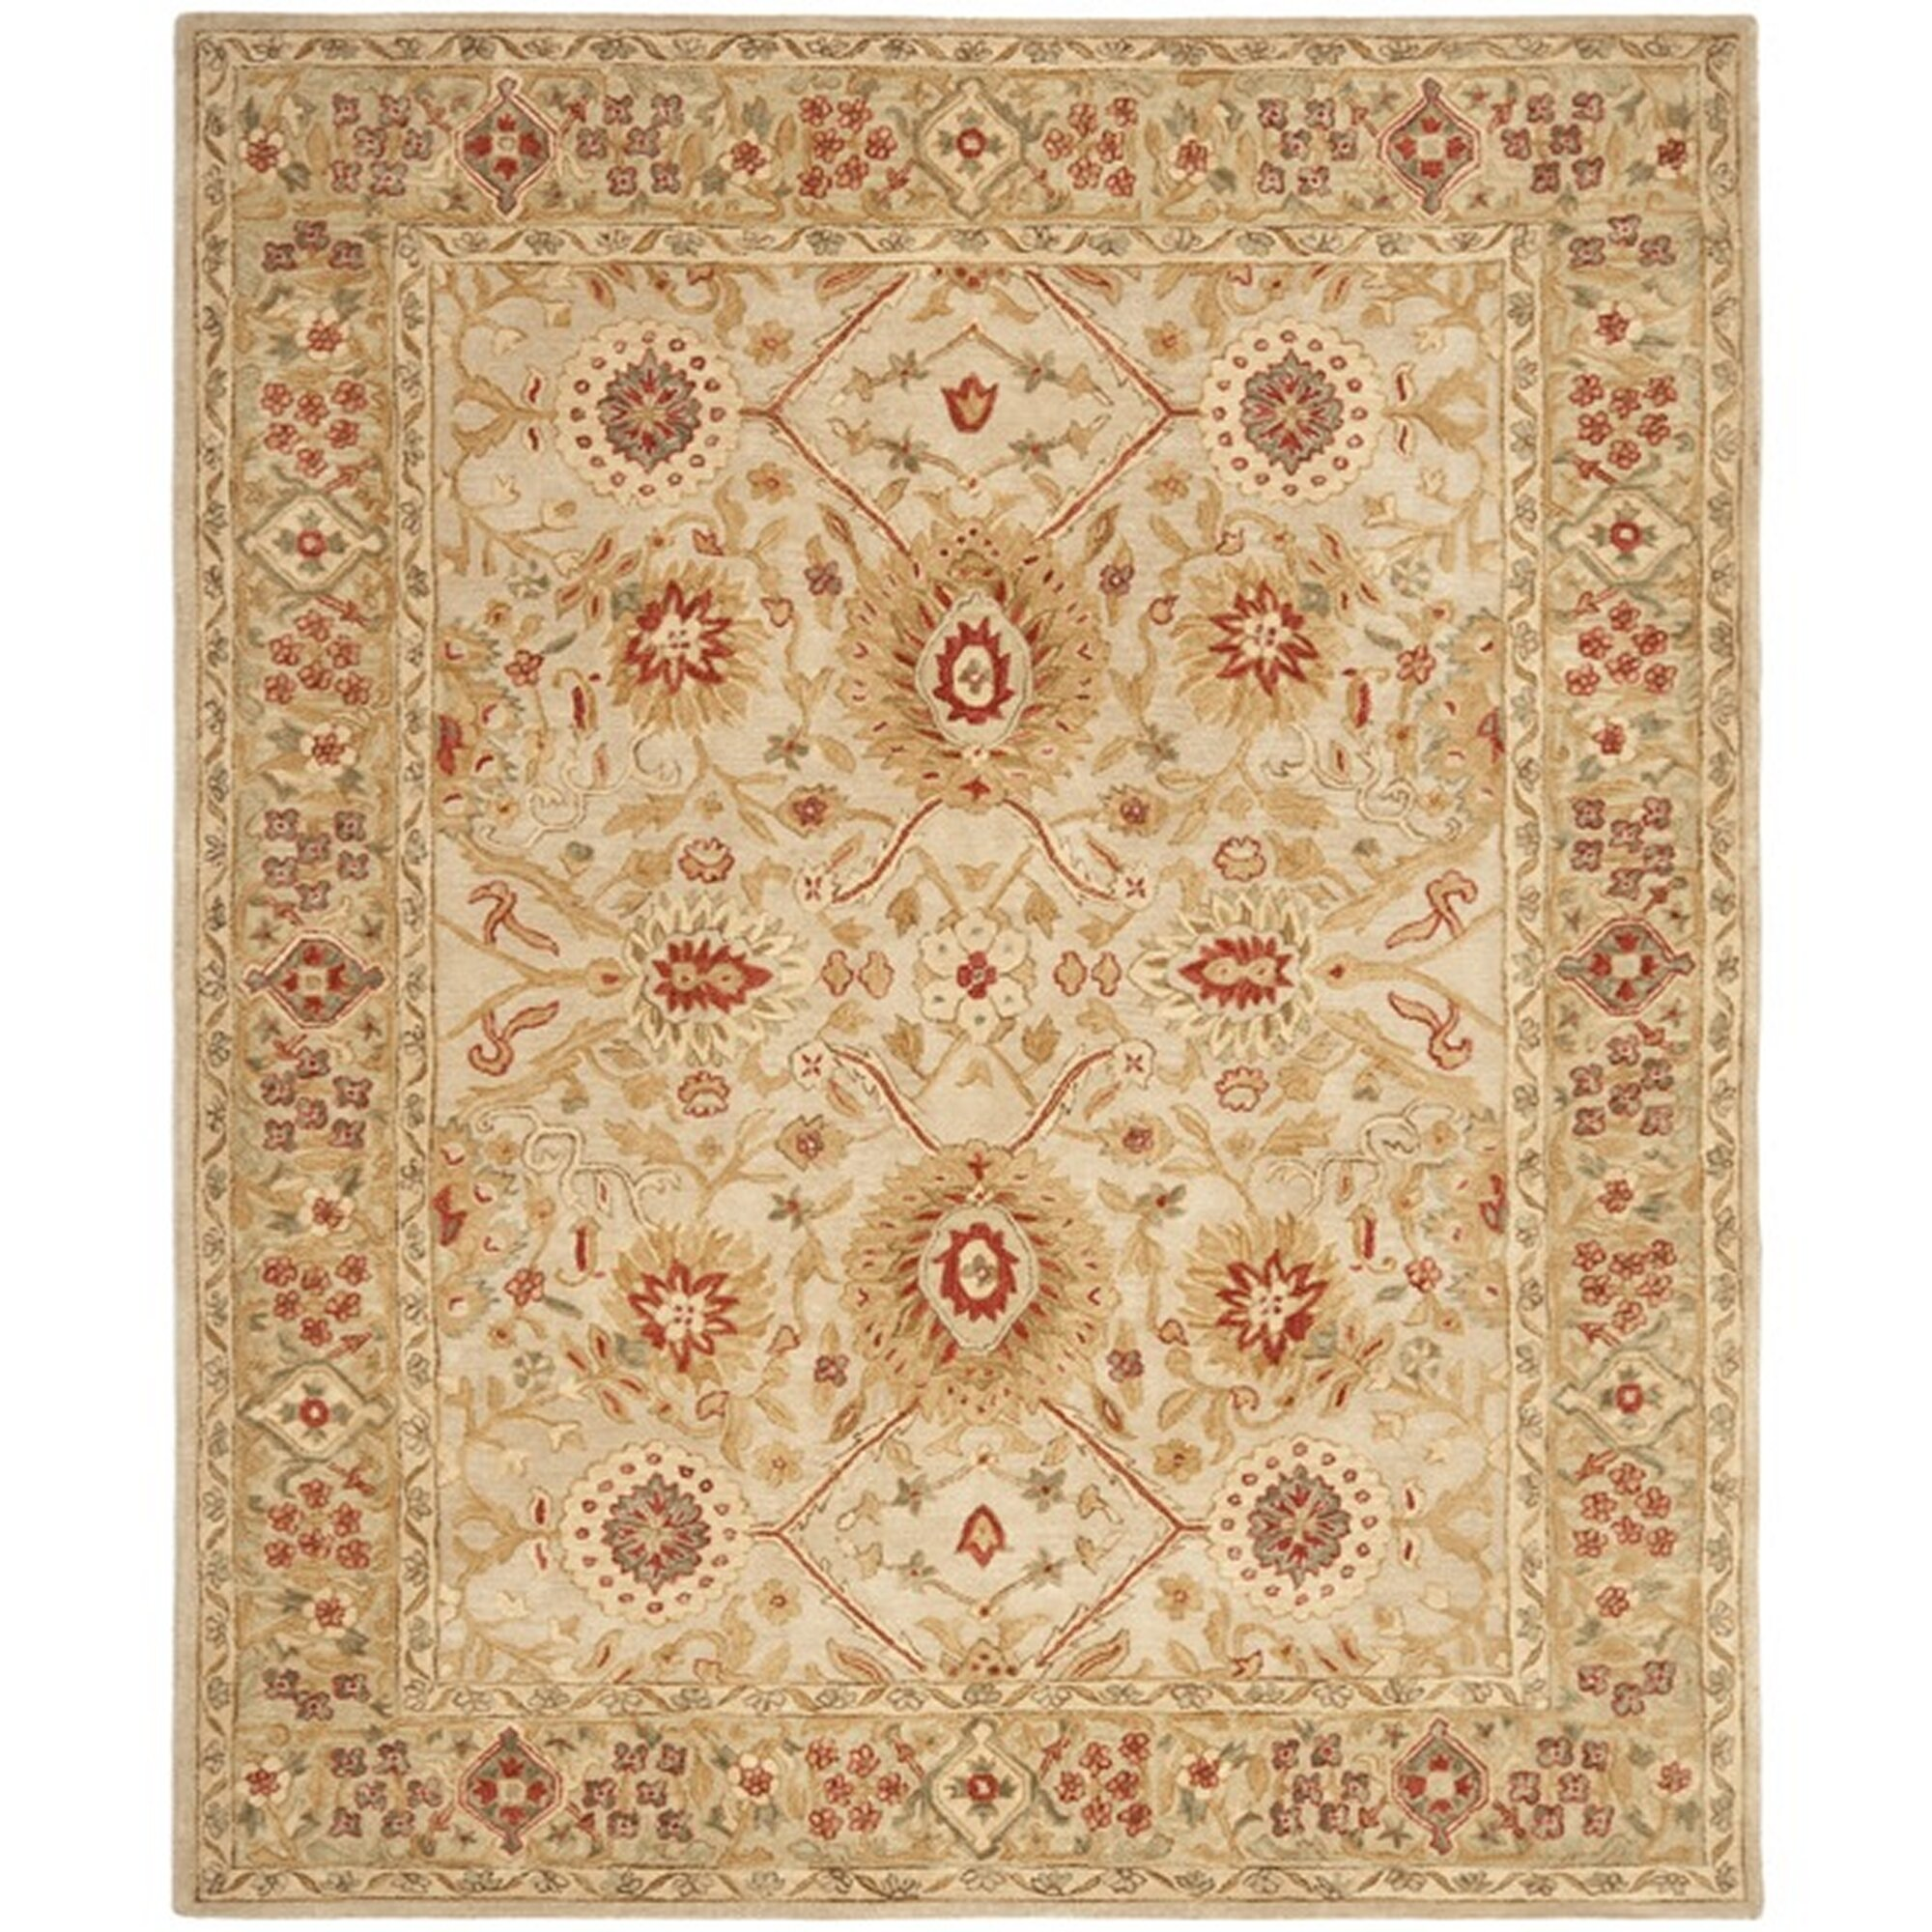 Safavieh anatolia area rug reviews wayfair for Where can i buy area rugs